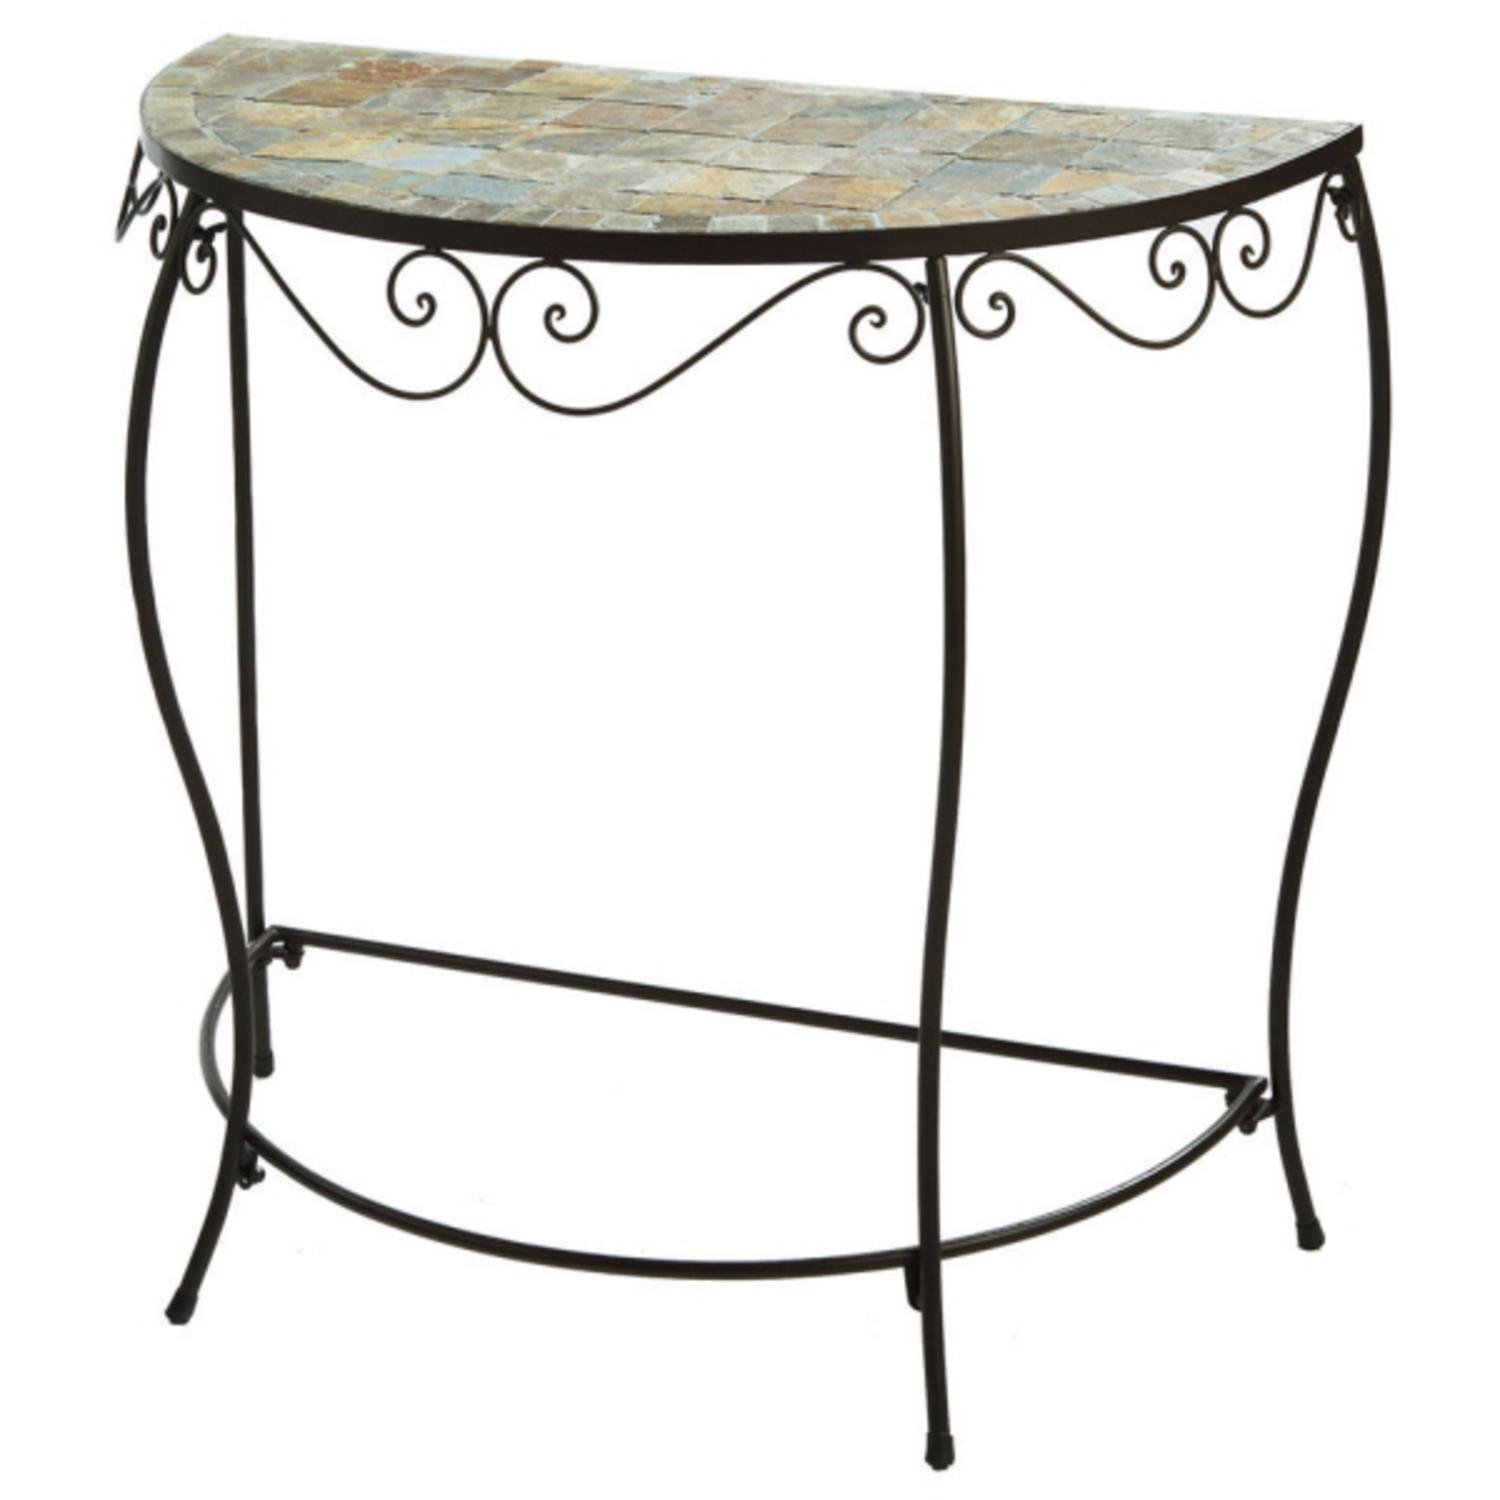 home furnishings tiled mosaic half moon console accent table kitchen dining tablecloth for foot folding wood coffee christmas cloth set comfy garden chair bathroom styles pier one